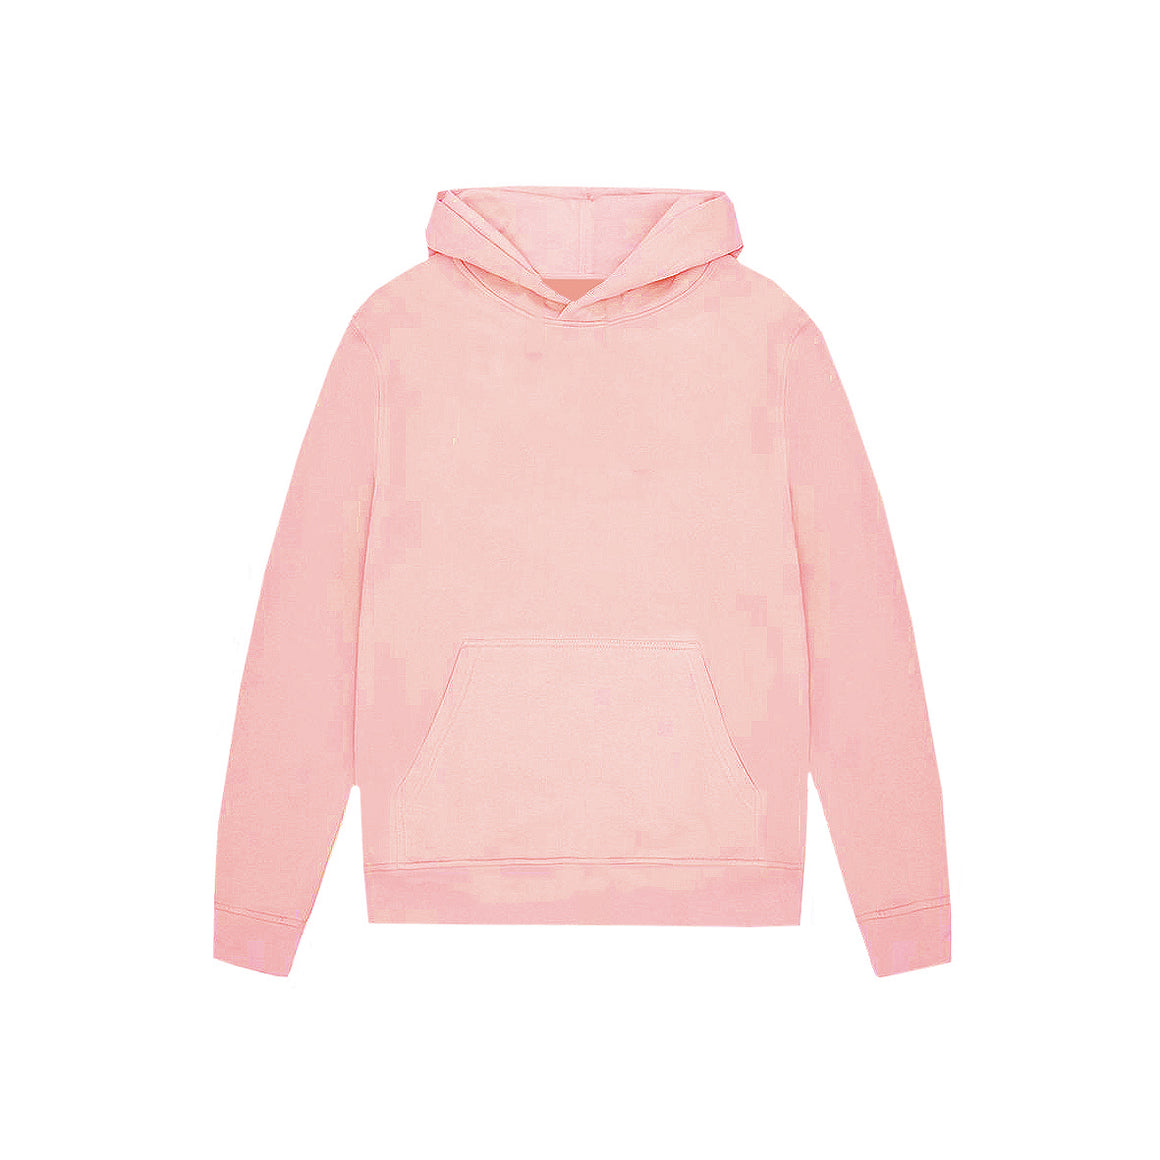 PREMIUM ESSENTIAL PULLOVER HOODY | DUSTY PINK